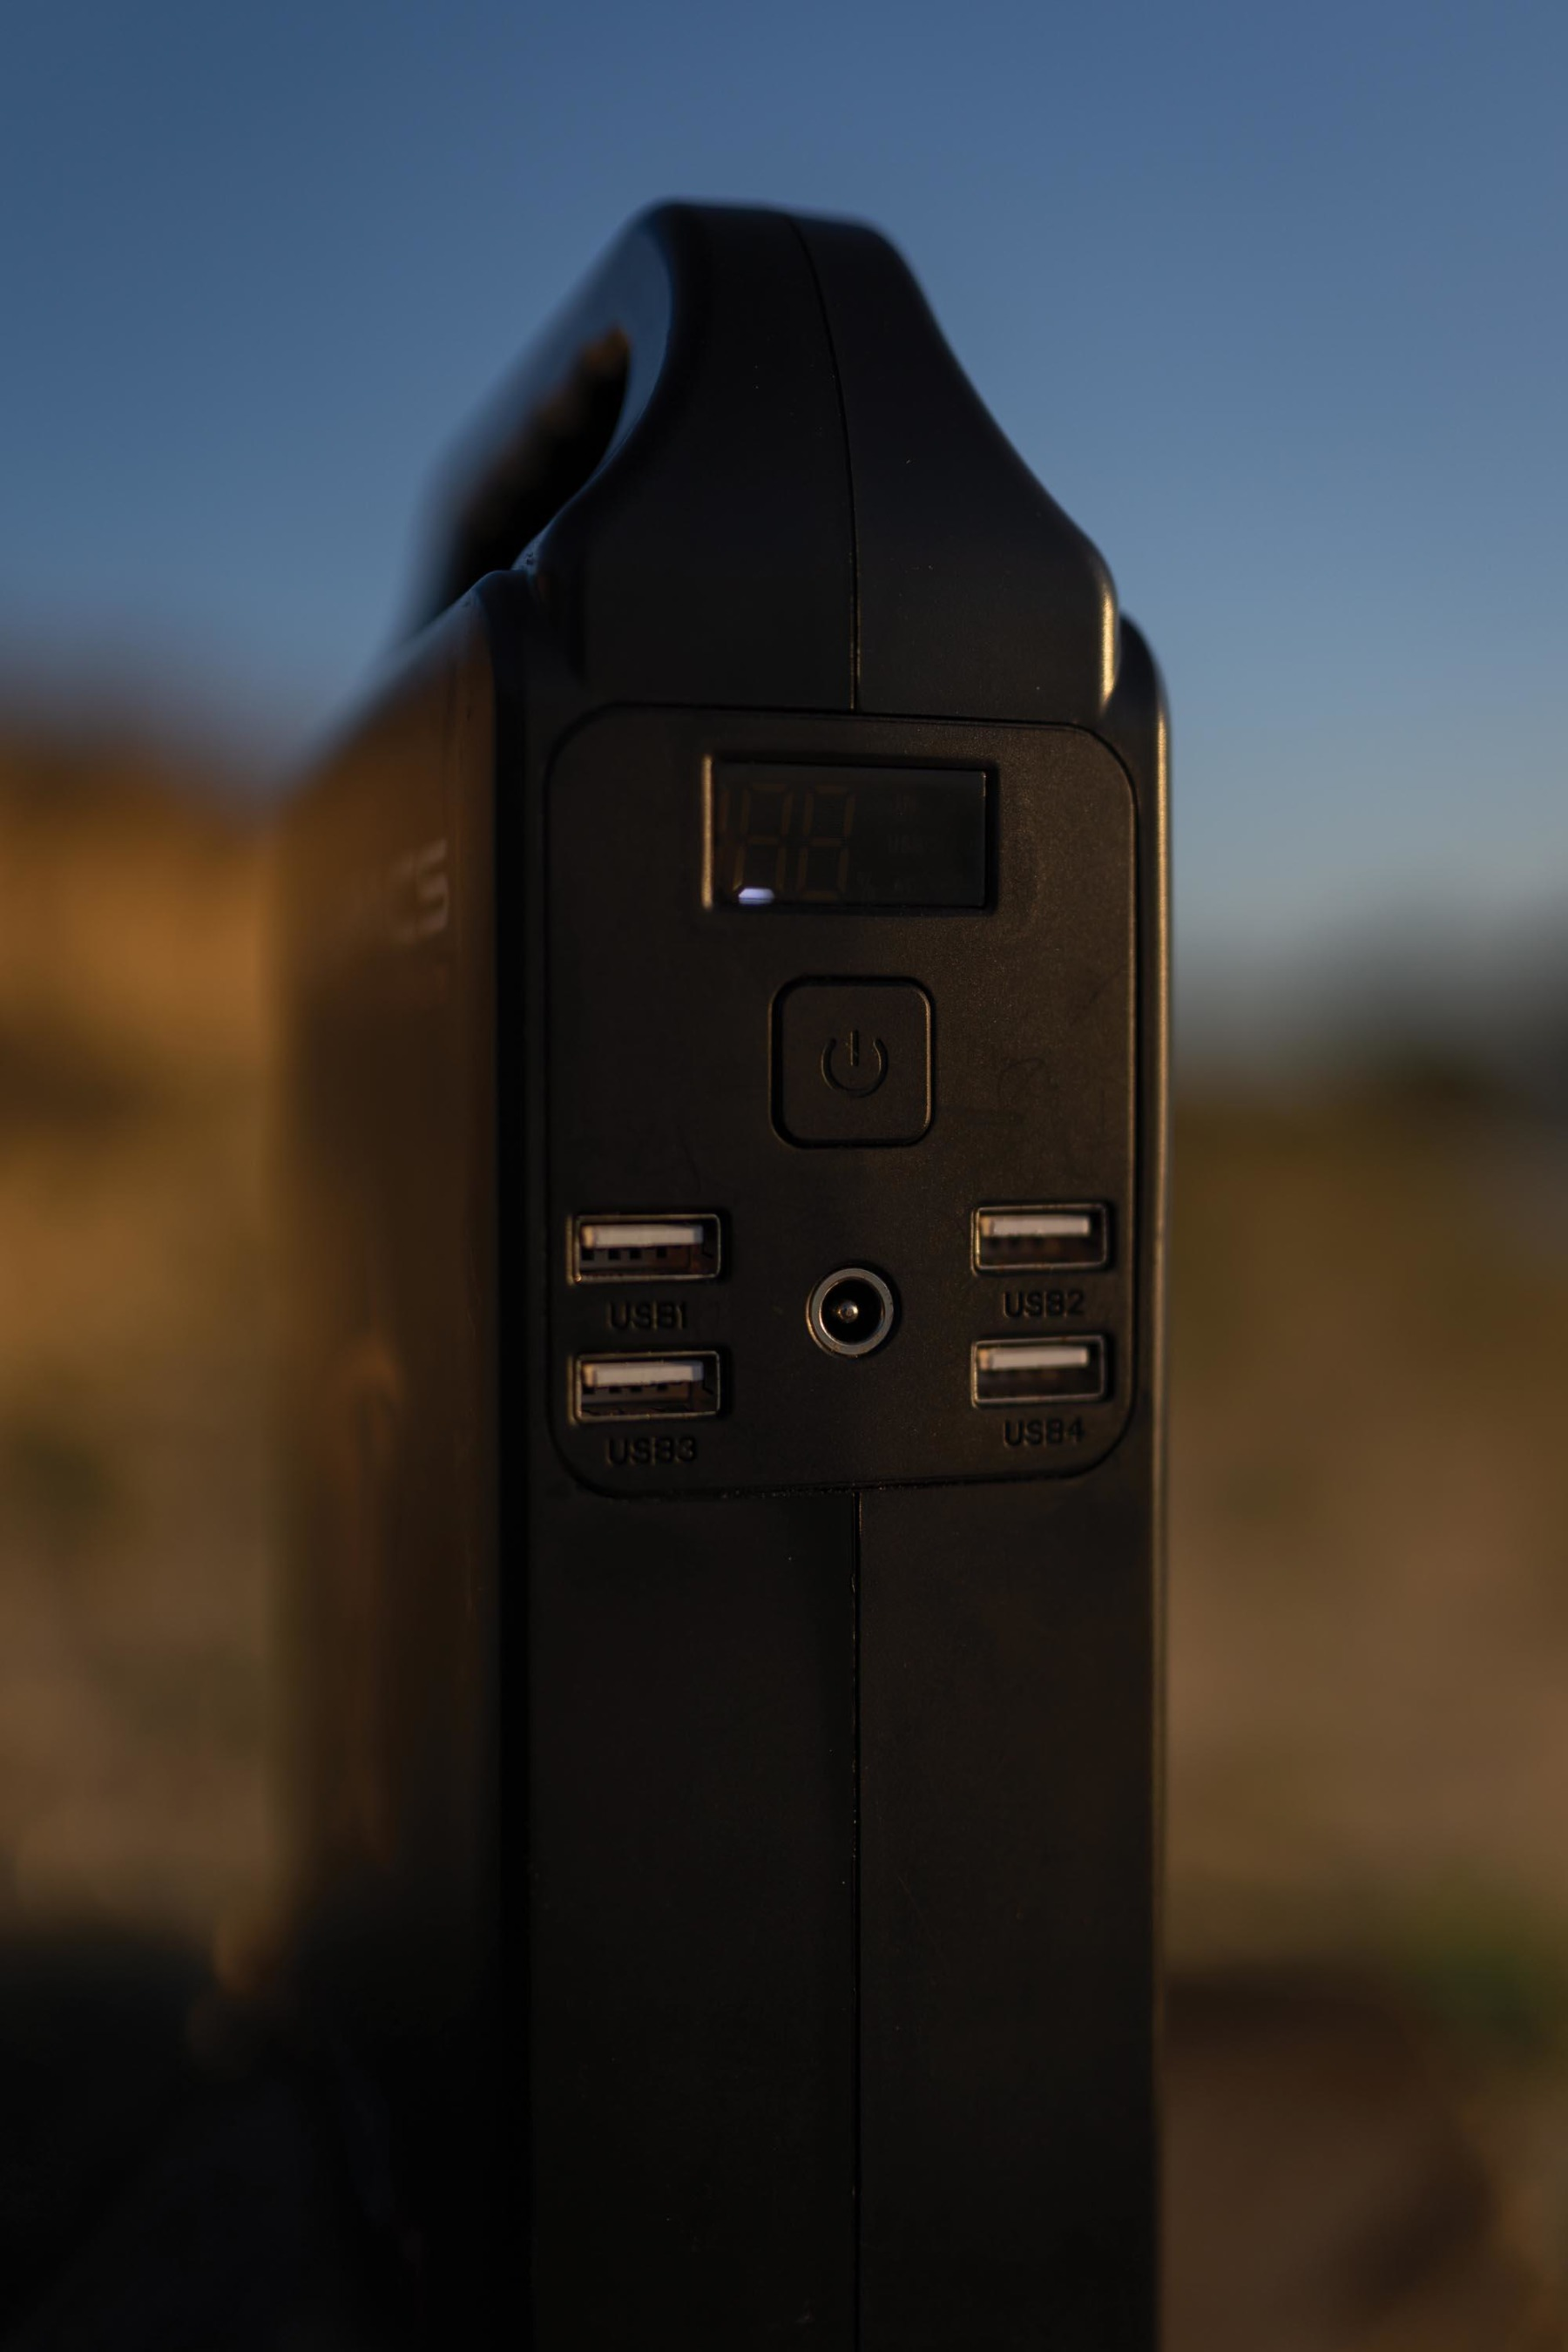 One of the unique features on the Atom is the standard plug socket